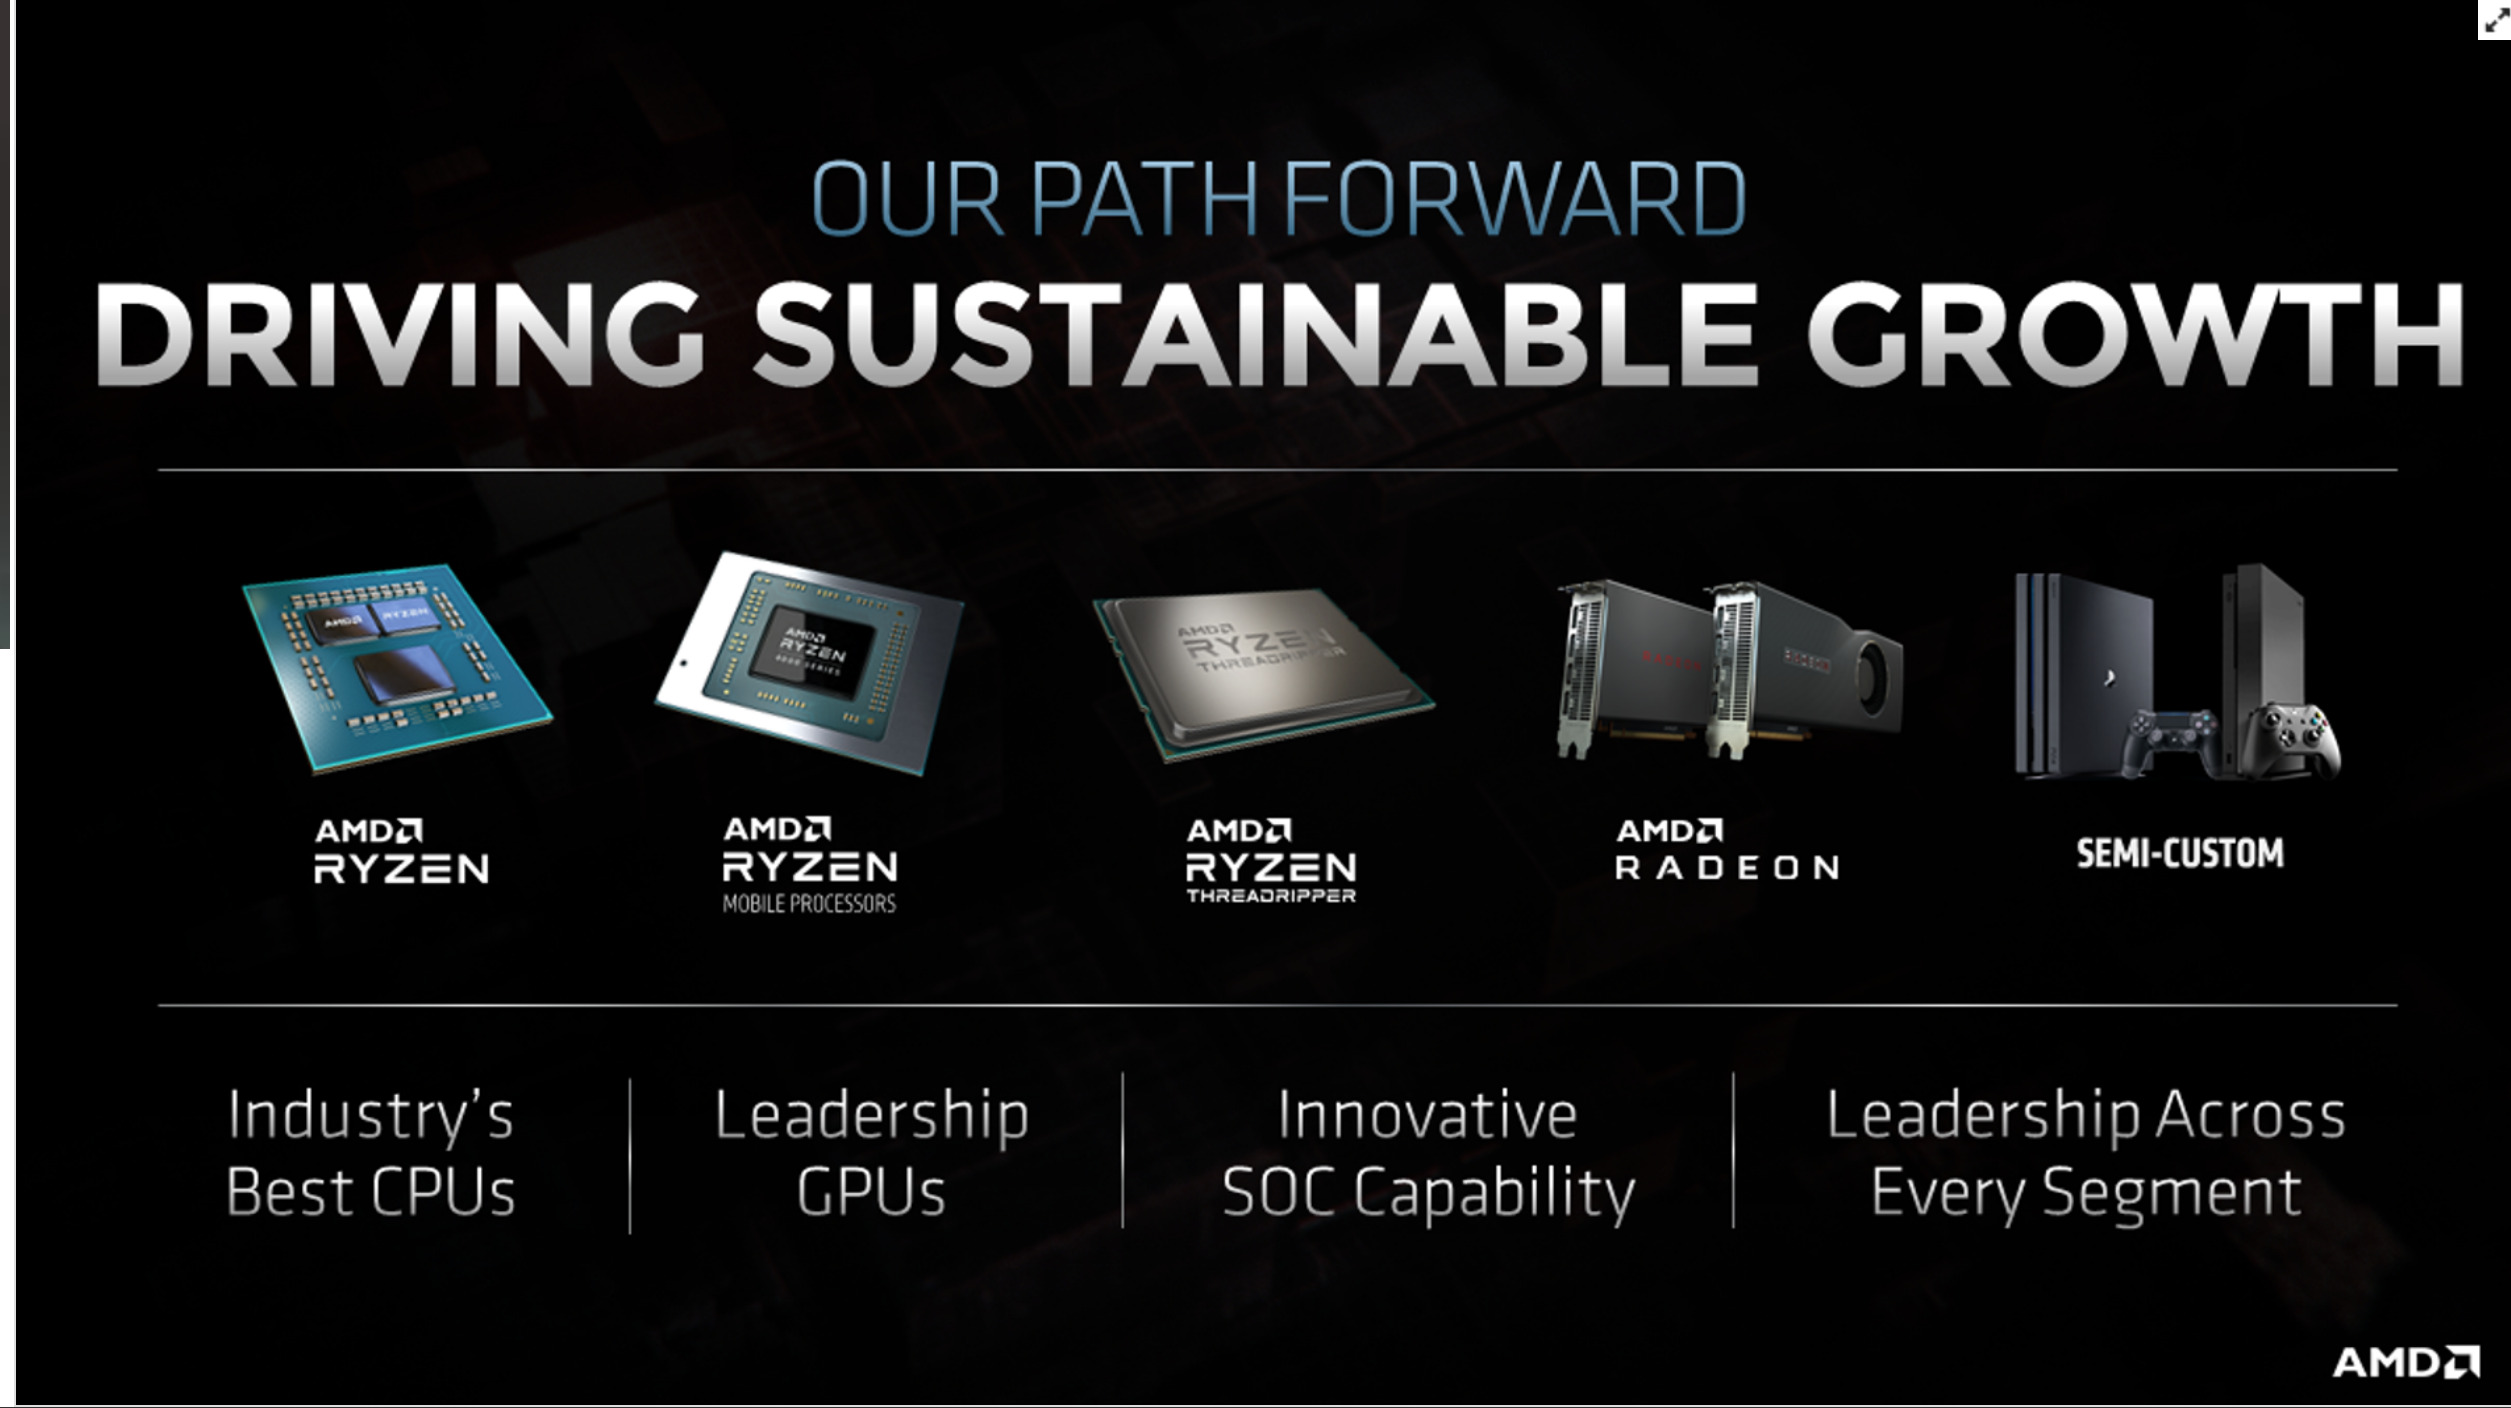 Amd Ryzen And Epyc Roadmaps Updated Vermeer For Gamers And Enthusiasts Milan And Genoa For Servers Hardware Times